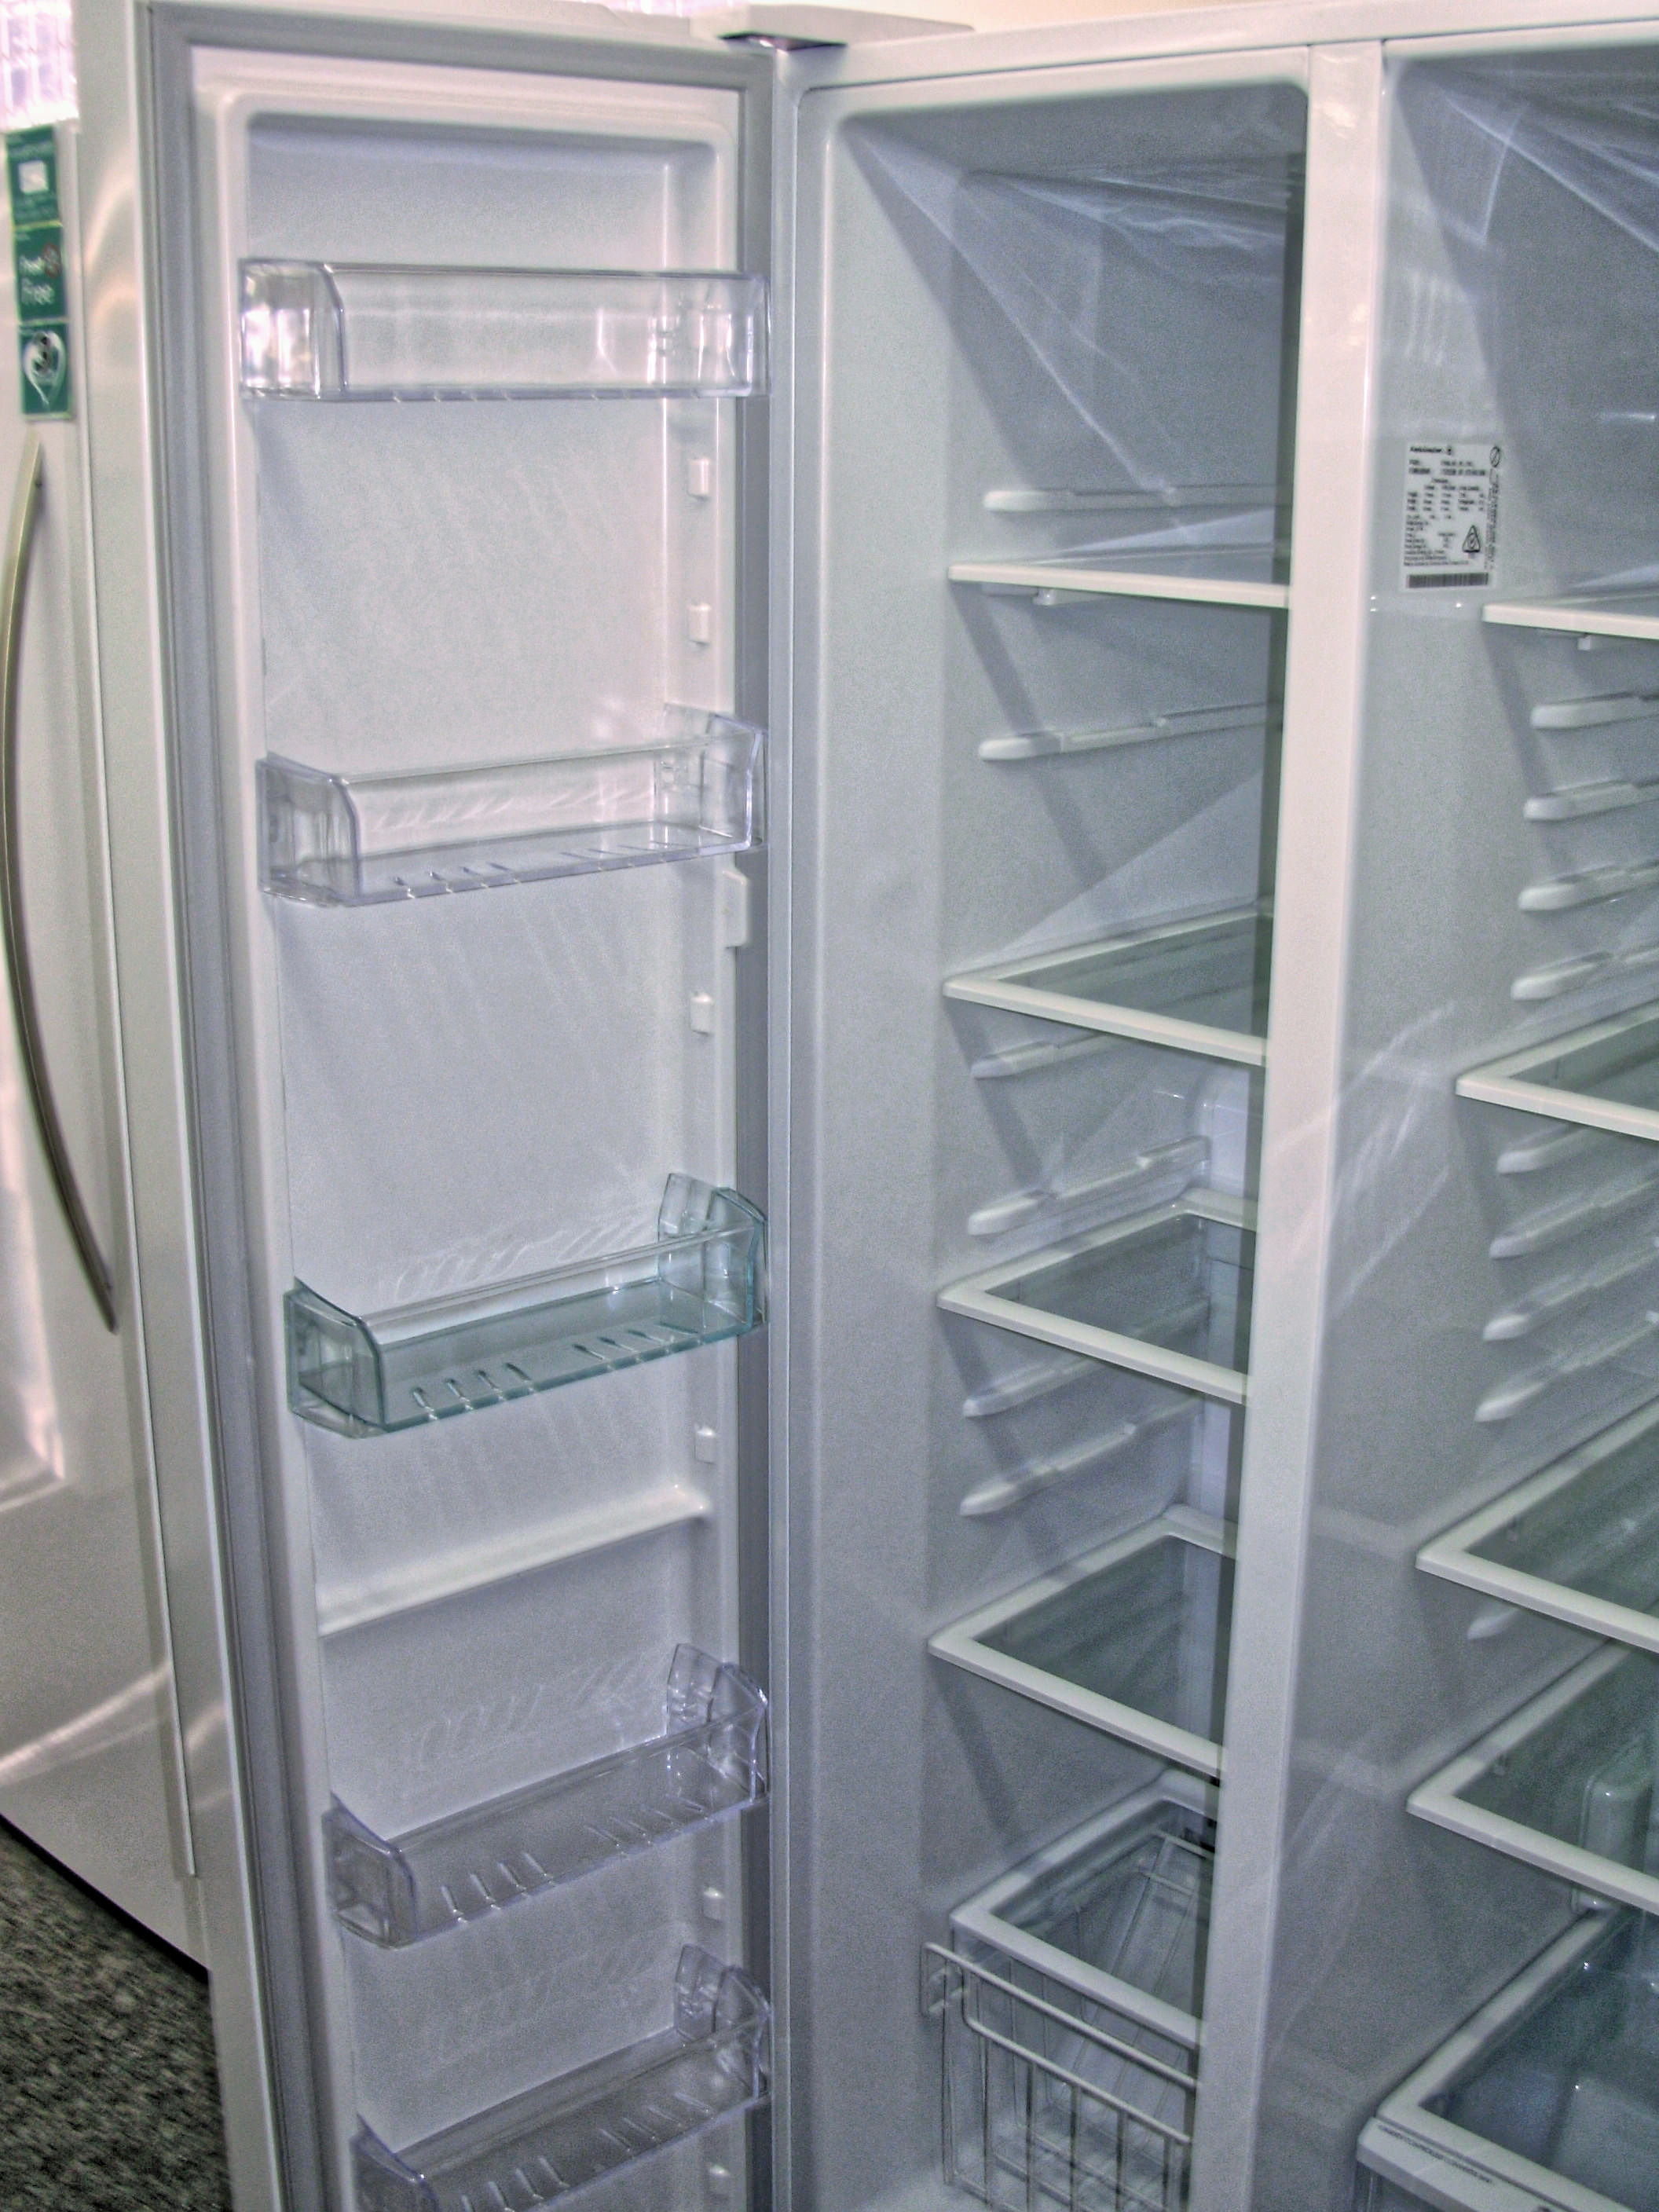 This should be Fridge-1.jpeg.  Is it missing?